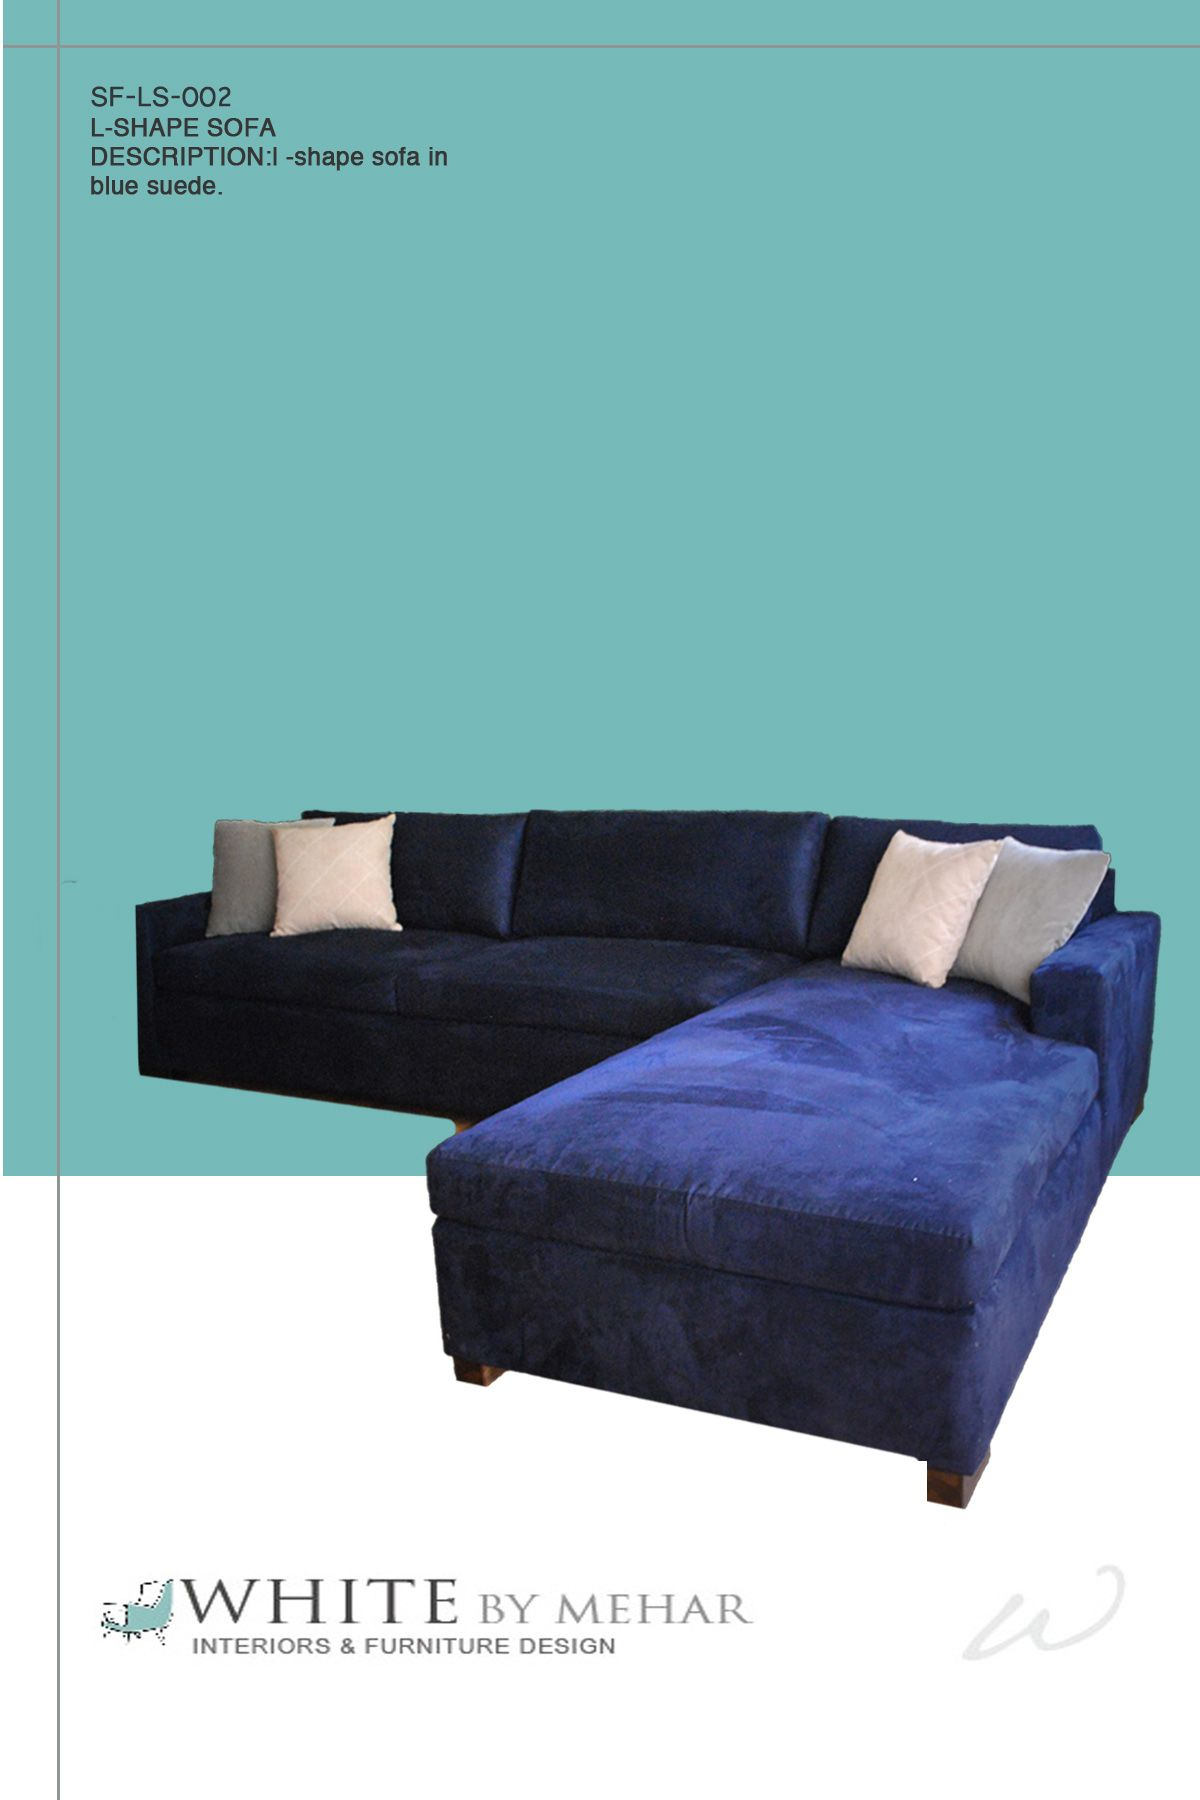 L Shape Sofa In Blue Suede | L Shape Sofas By White By Mehar